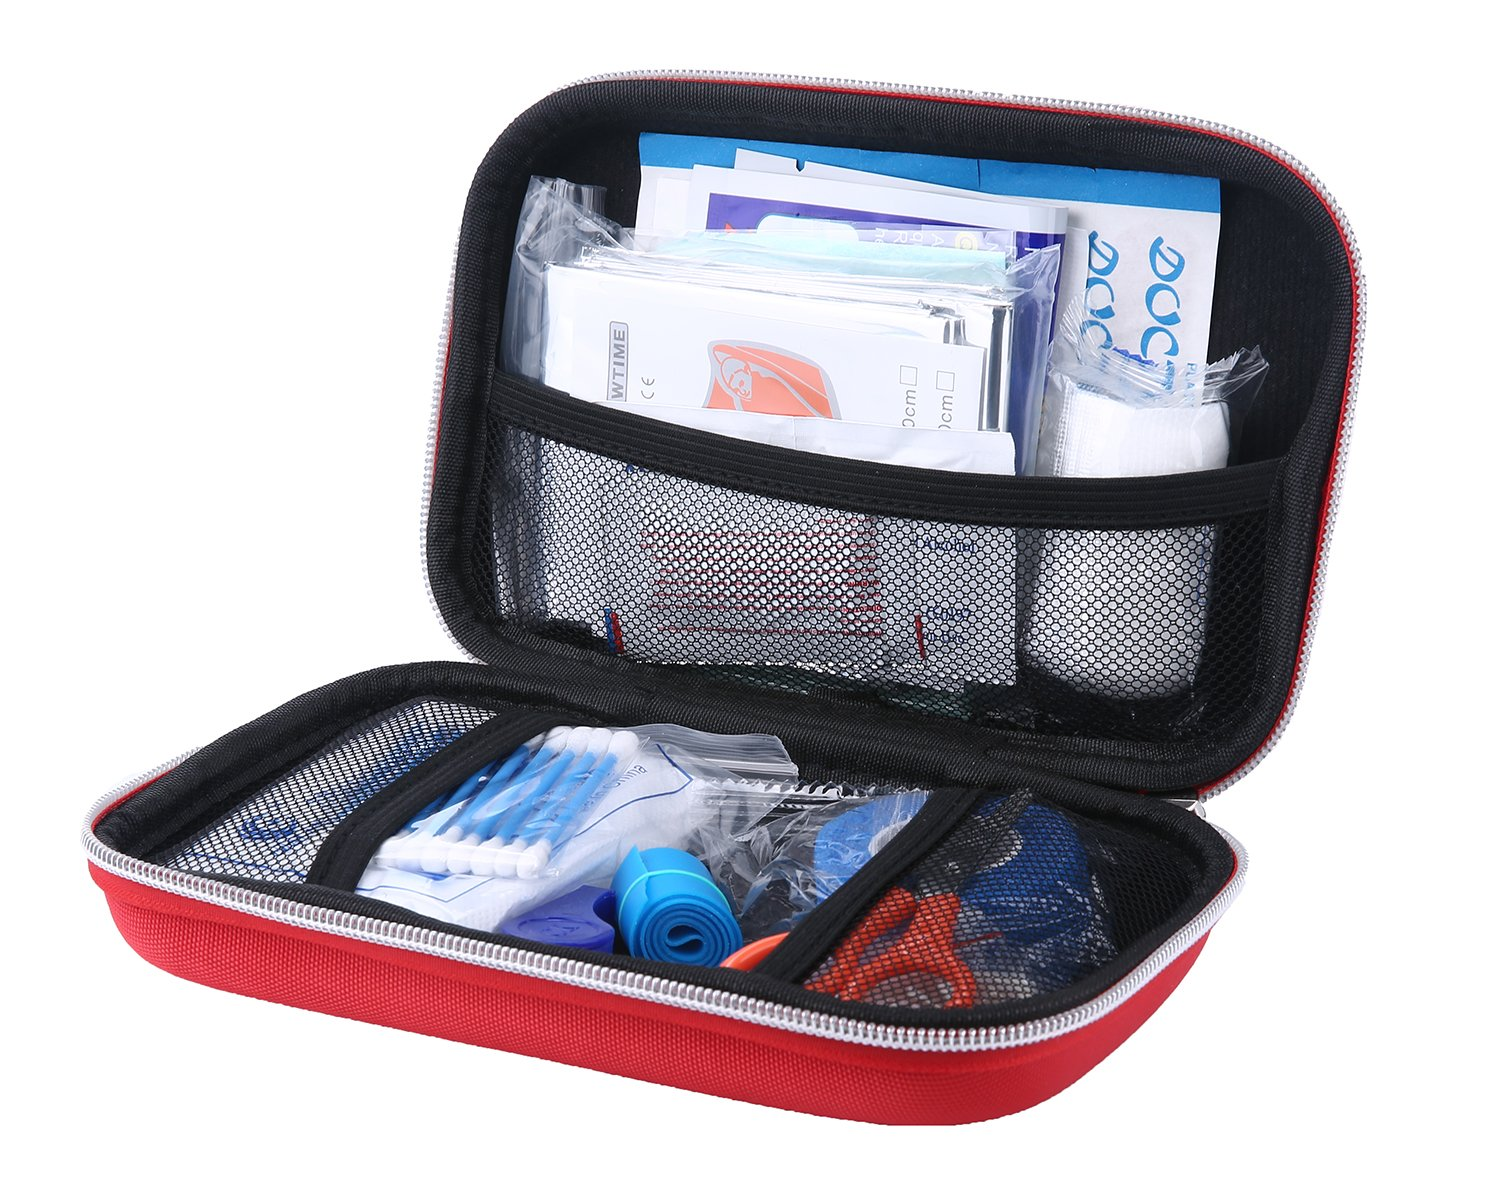 Complete First Aid Kit, Aolvo Professional Mini Survival Kit Emergency Medical Trauma Bag, Lightweight, Waterproof and Portable for Home Travel Outdoors Hiking Camping - 20 Piece with EVA Red Case